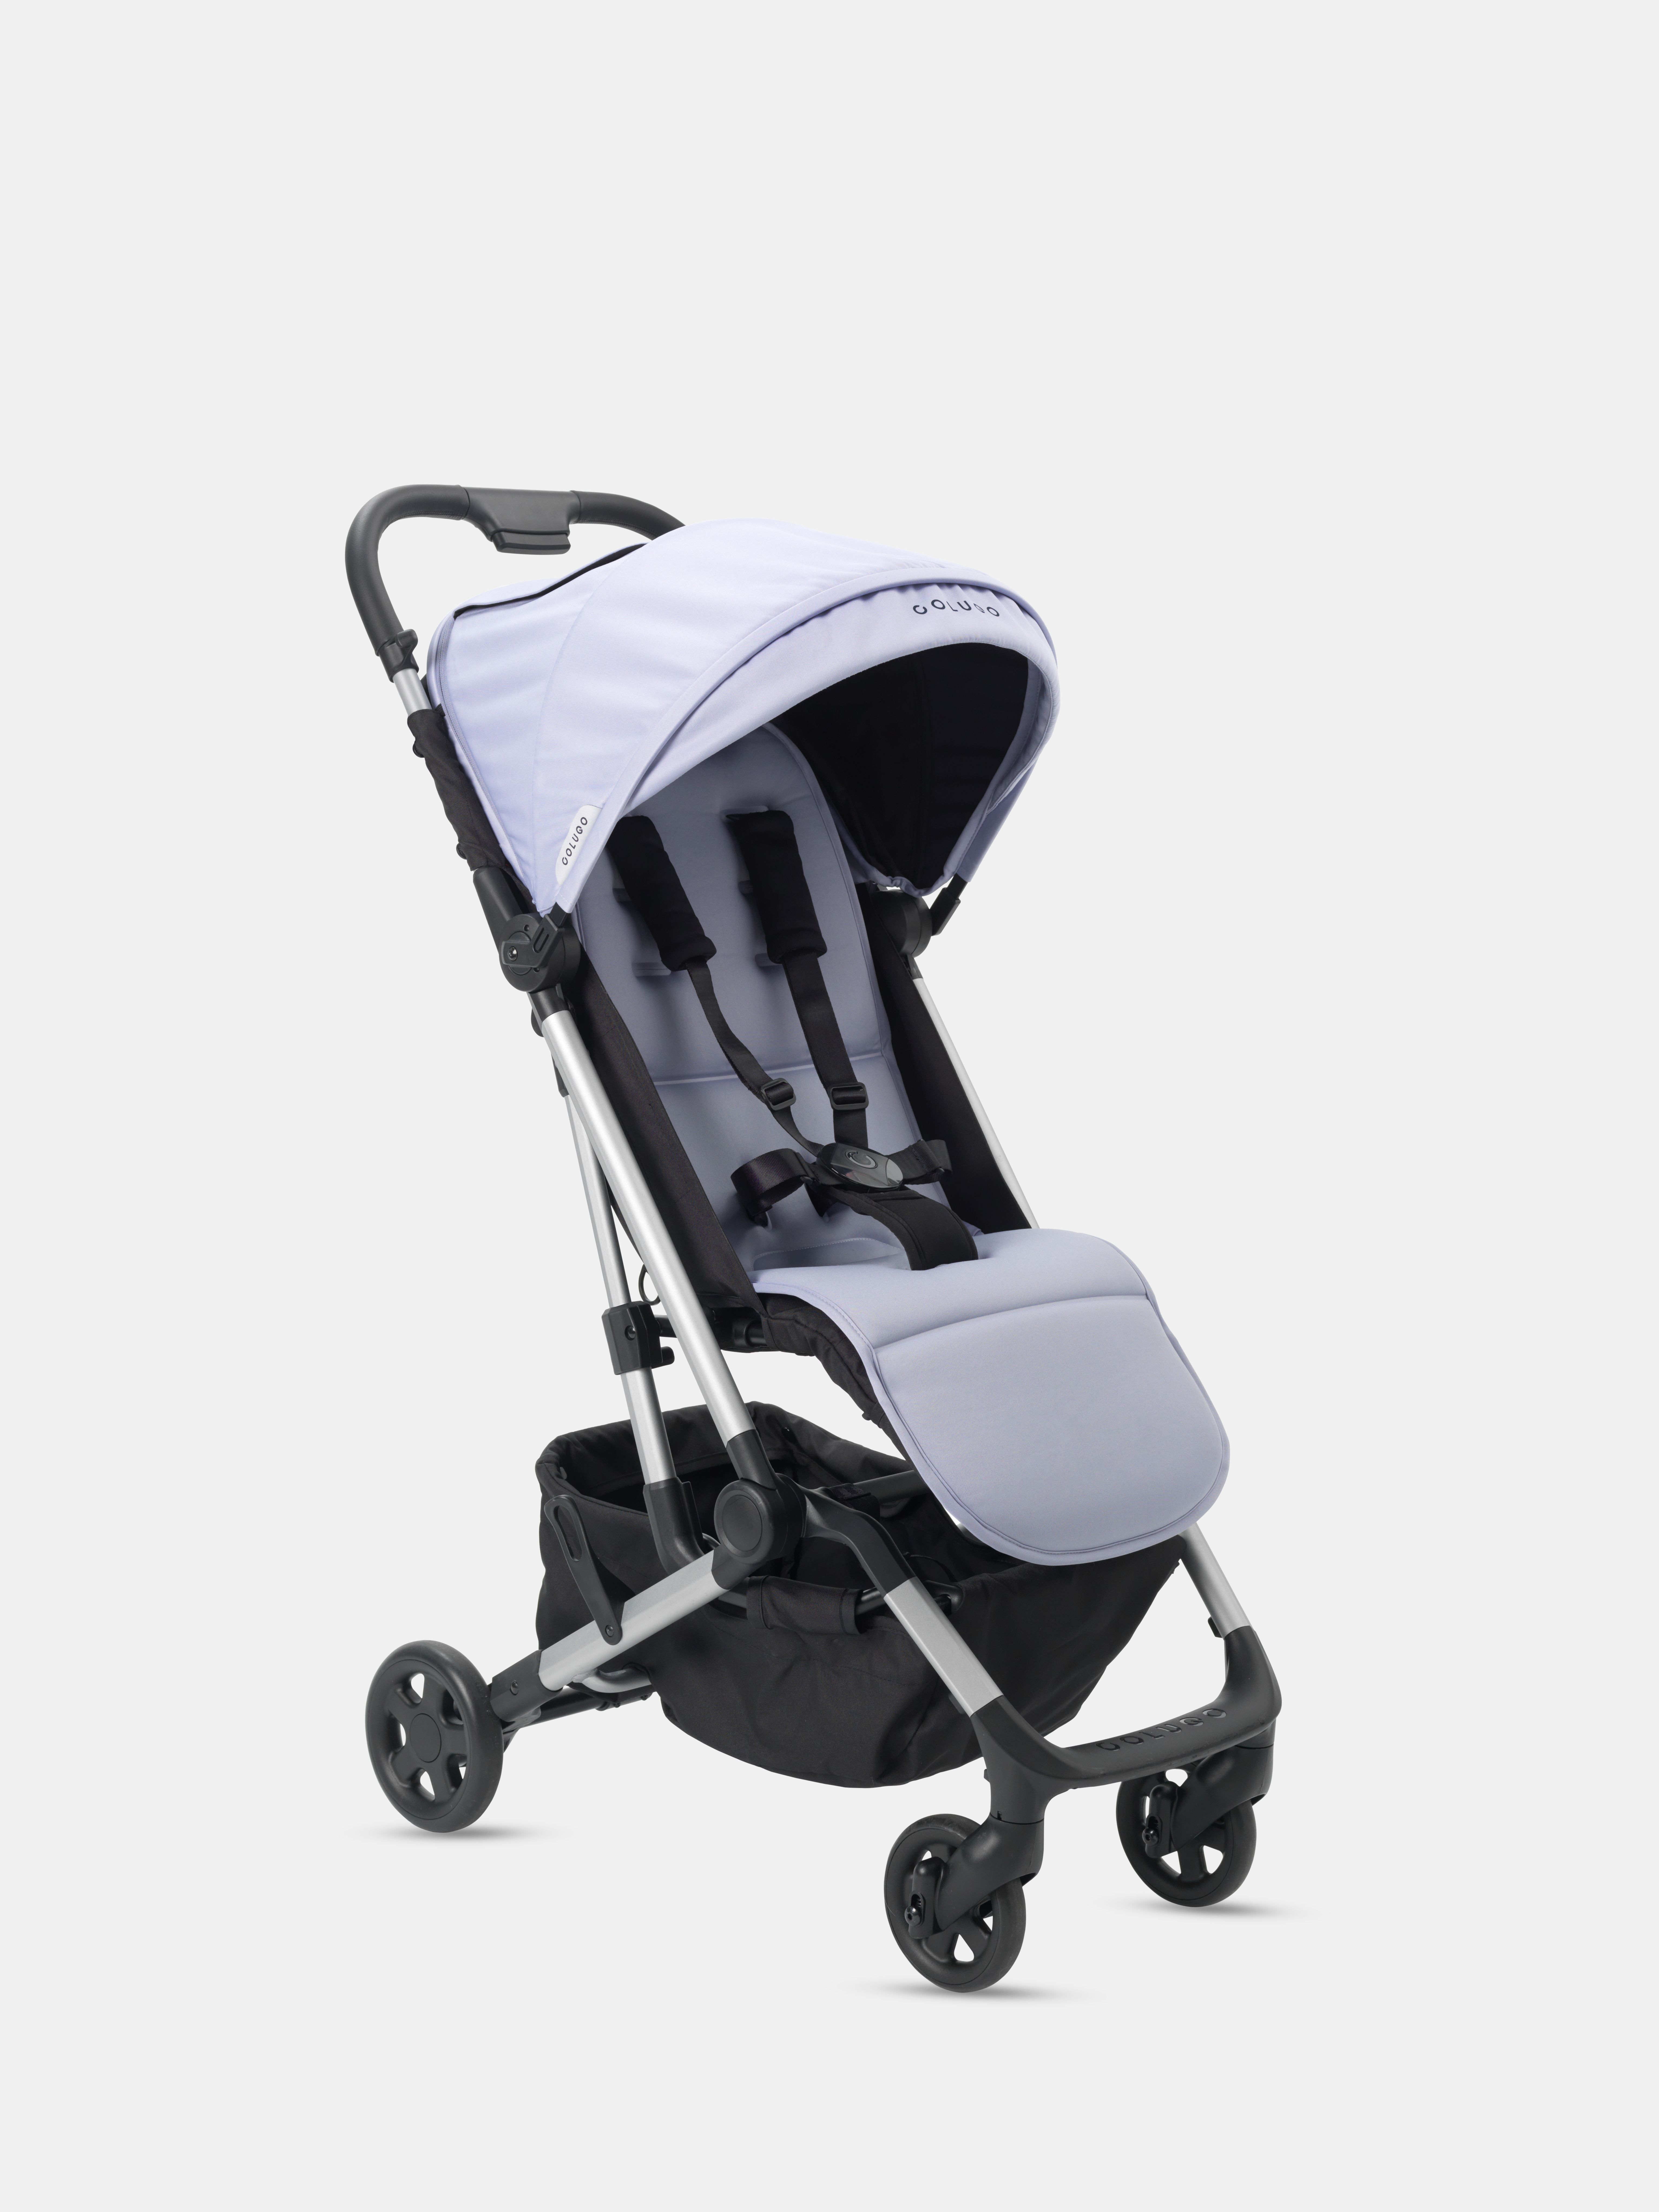 The Compact Stroller Lavender Compact strollers